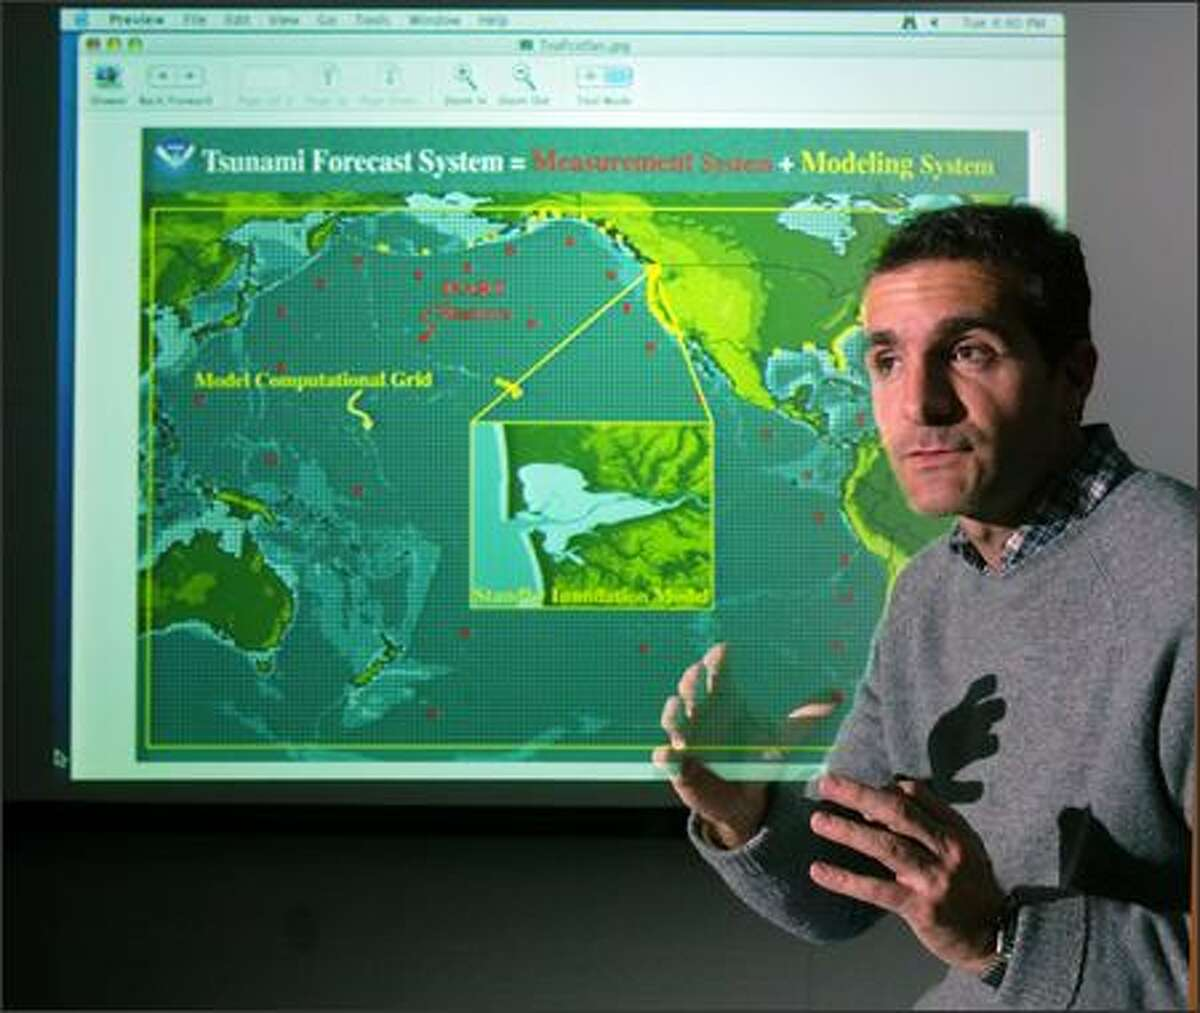 The Trump administration wants to slash all money for the ShakeAlert earthquake warning system on the West Coast. Here, NOAA research scientist Diego Arcas talks about NOAA's Tsunami Forcast, Measurement and Modeling Systems. Behind him is a projected map of the Pacific Rim showing DARTs (Deep Ocean Assesment of Tsunamis; Red dots) and SIMs (Standby Inundation Mode; yellow squares) that will make up the building blocks of the Tsunami Warning System. The insert shows the Ocean Shores-Grays Harbor area of the Washington coast.